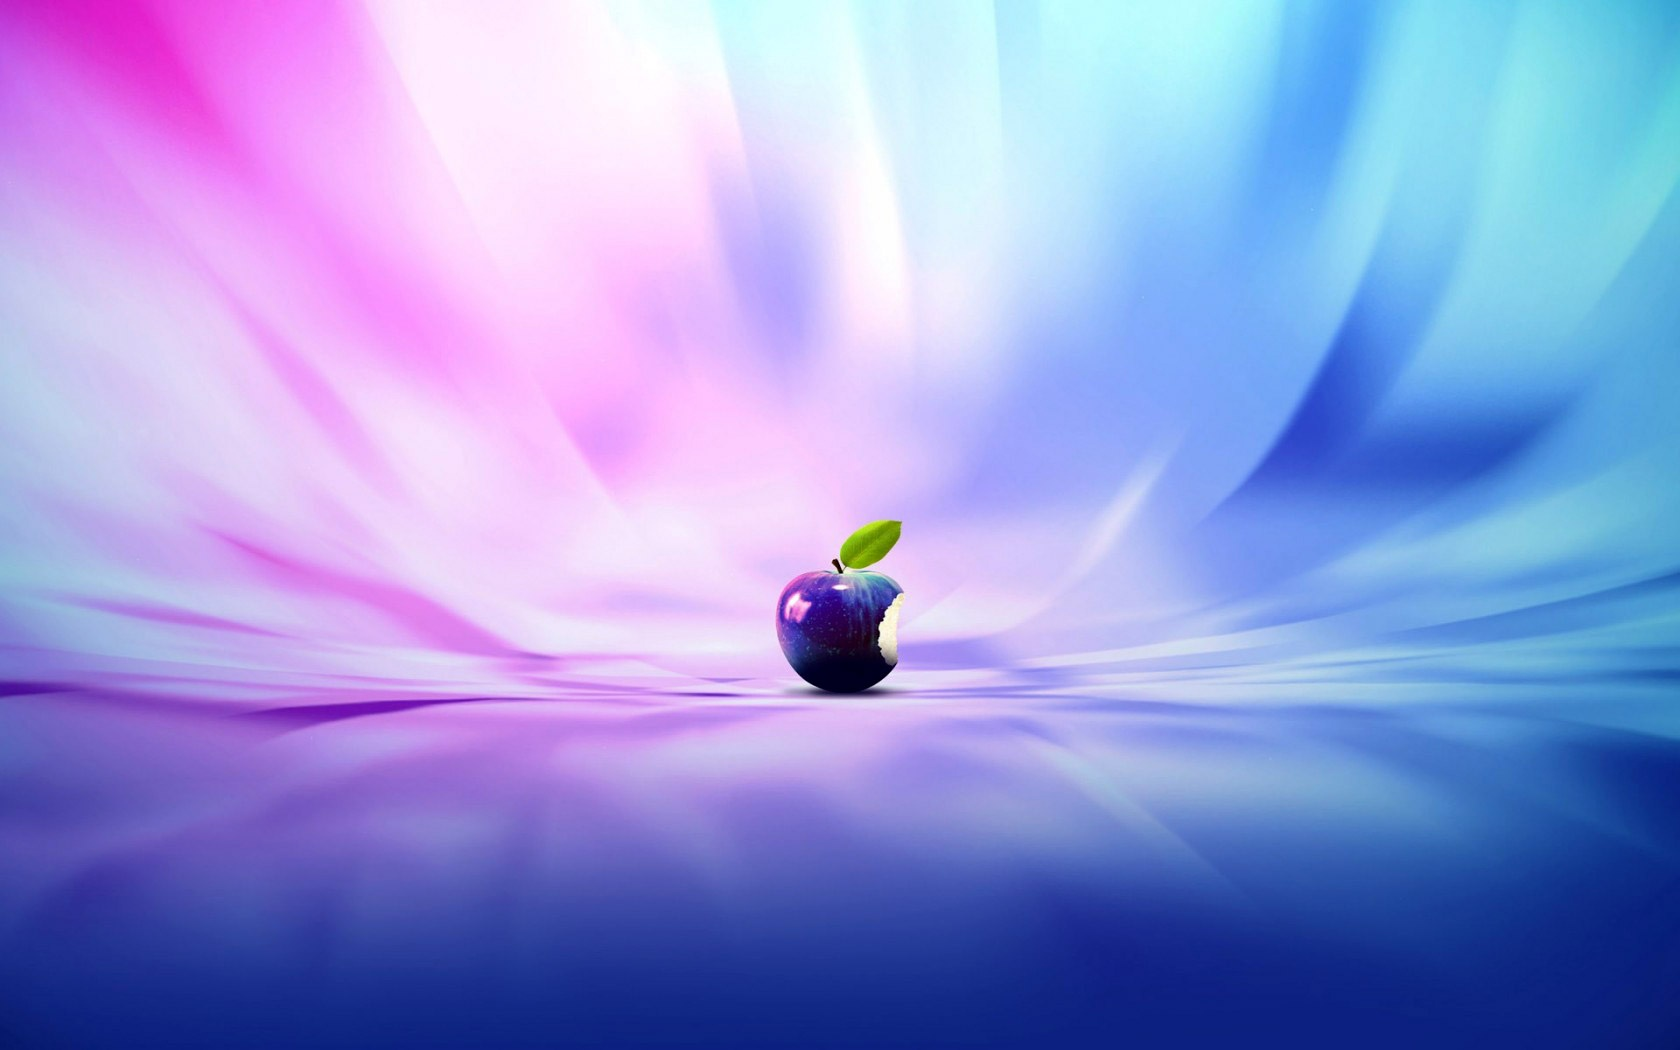 Collection of Apple Desktop Backgrounds on HDWallpapers